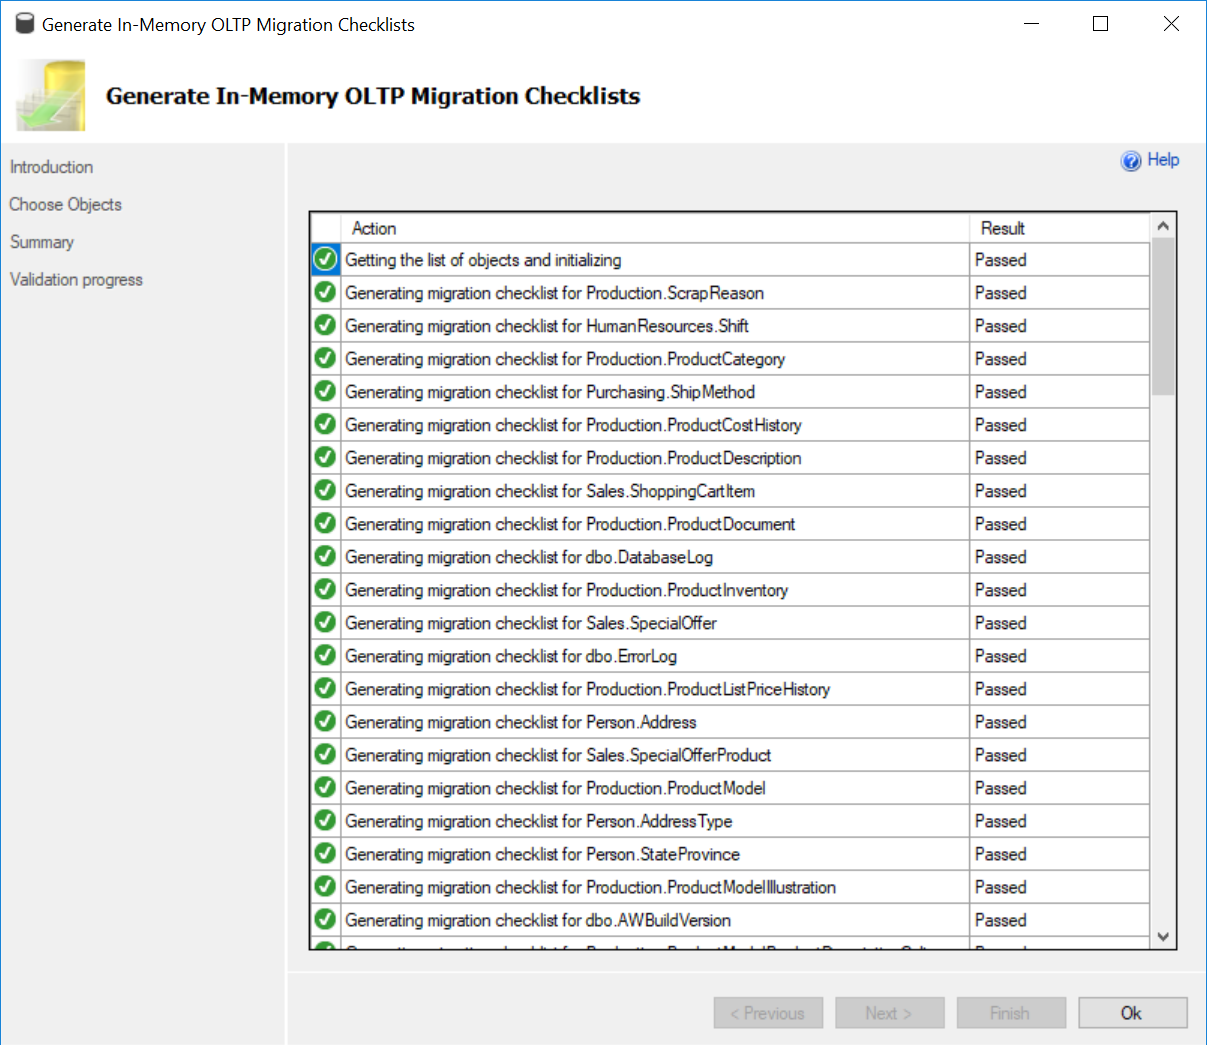 SQL SERVER - Generating In-Memory OLTP Migration CheckList - SQL